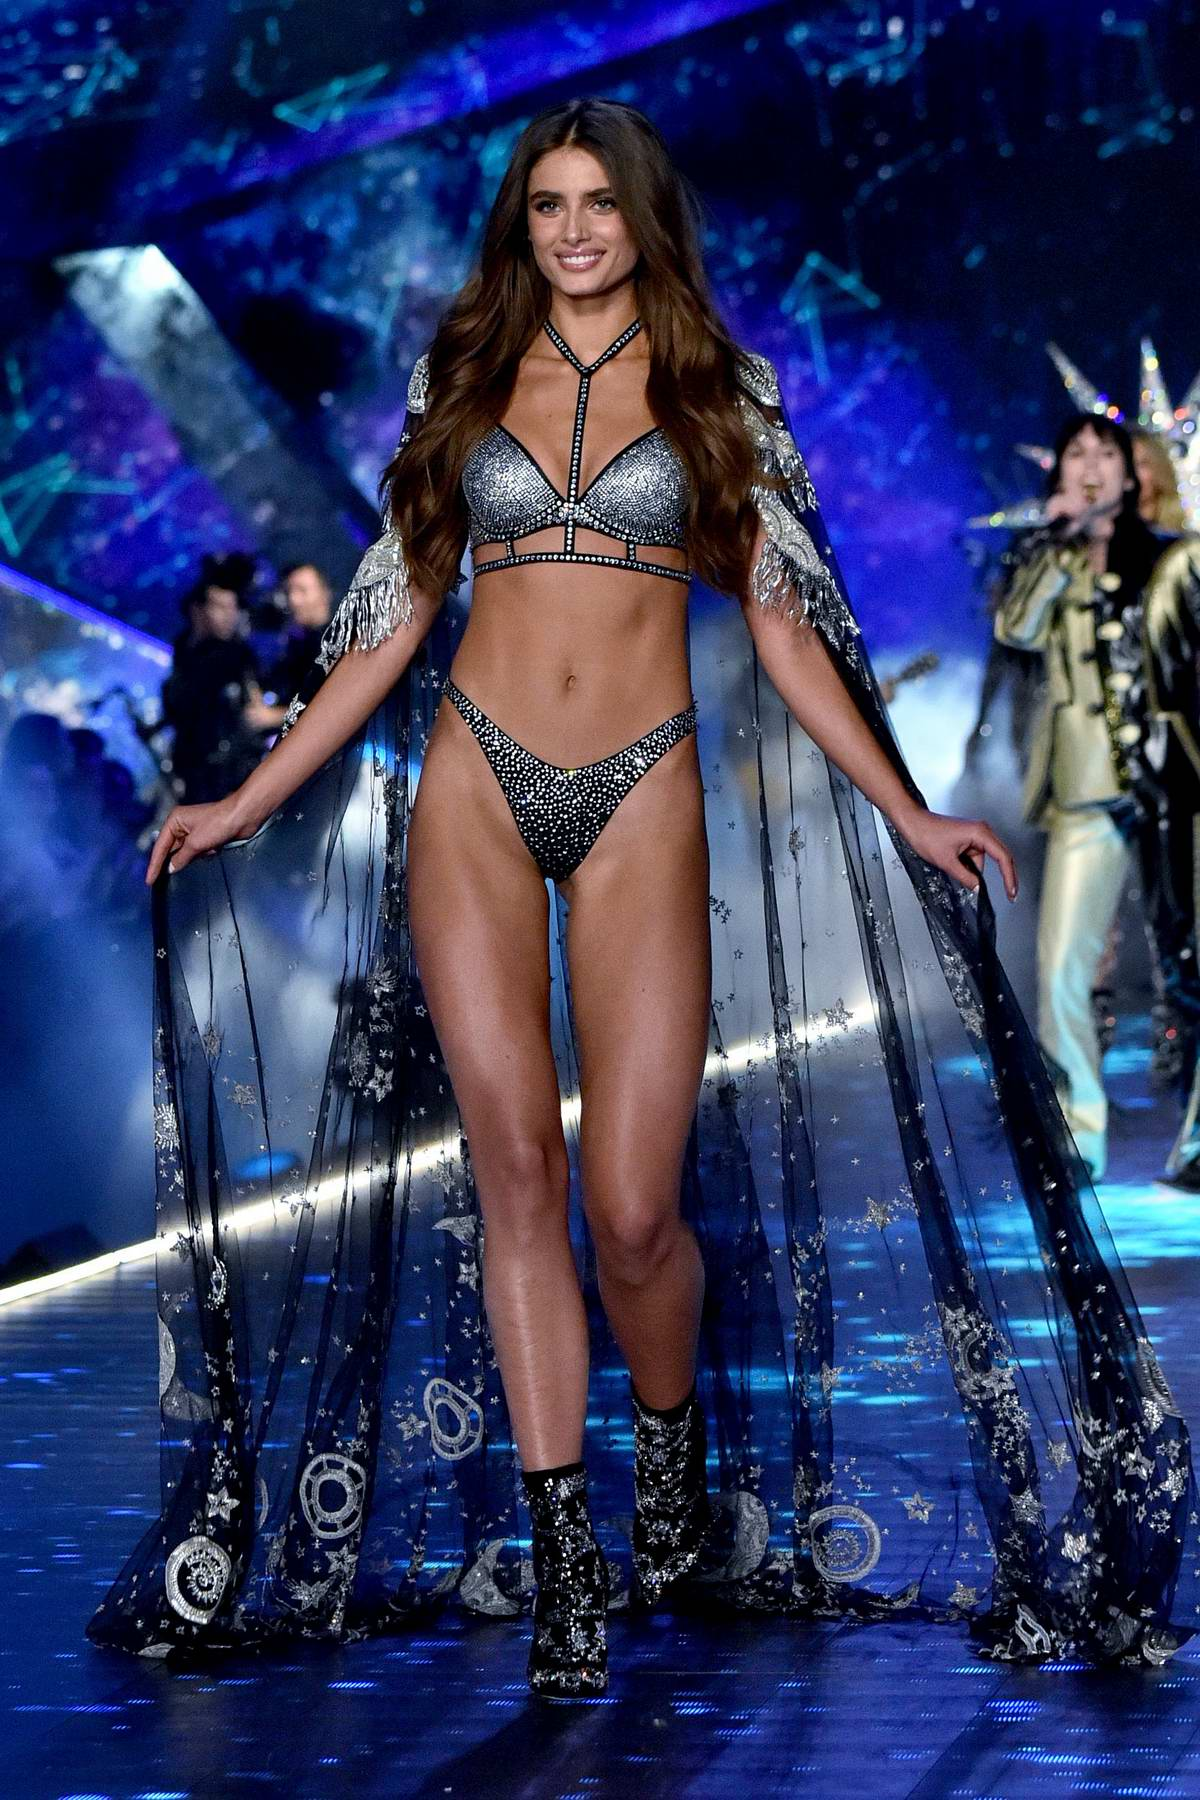 Taylor Hill walks the runway during the 2018 Victoria's Secret Fashion Show at Pier 94 in New York City